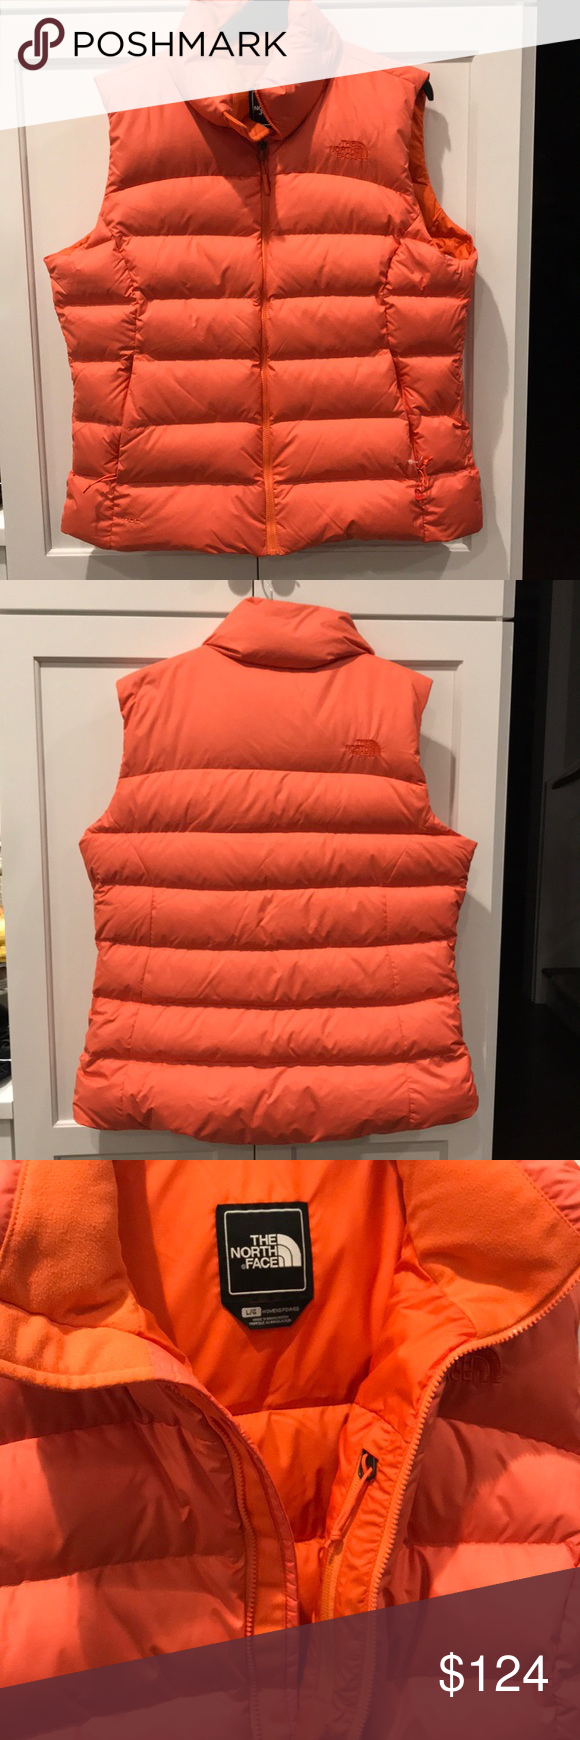 5c935dfac762 The North Face Womens Nuptse Vest Gilet Goose Down NEW without tag PRICED  FAIR   FIRM🙏🏻❤ Poshmark takes 20%! The North Face Womens Nuptse Vest  Gilet ...